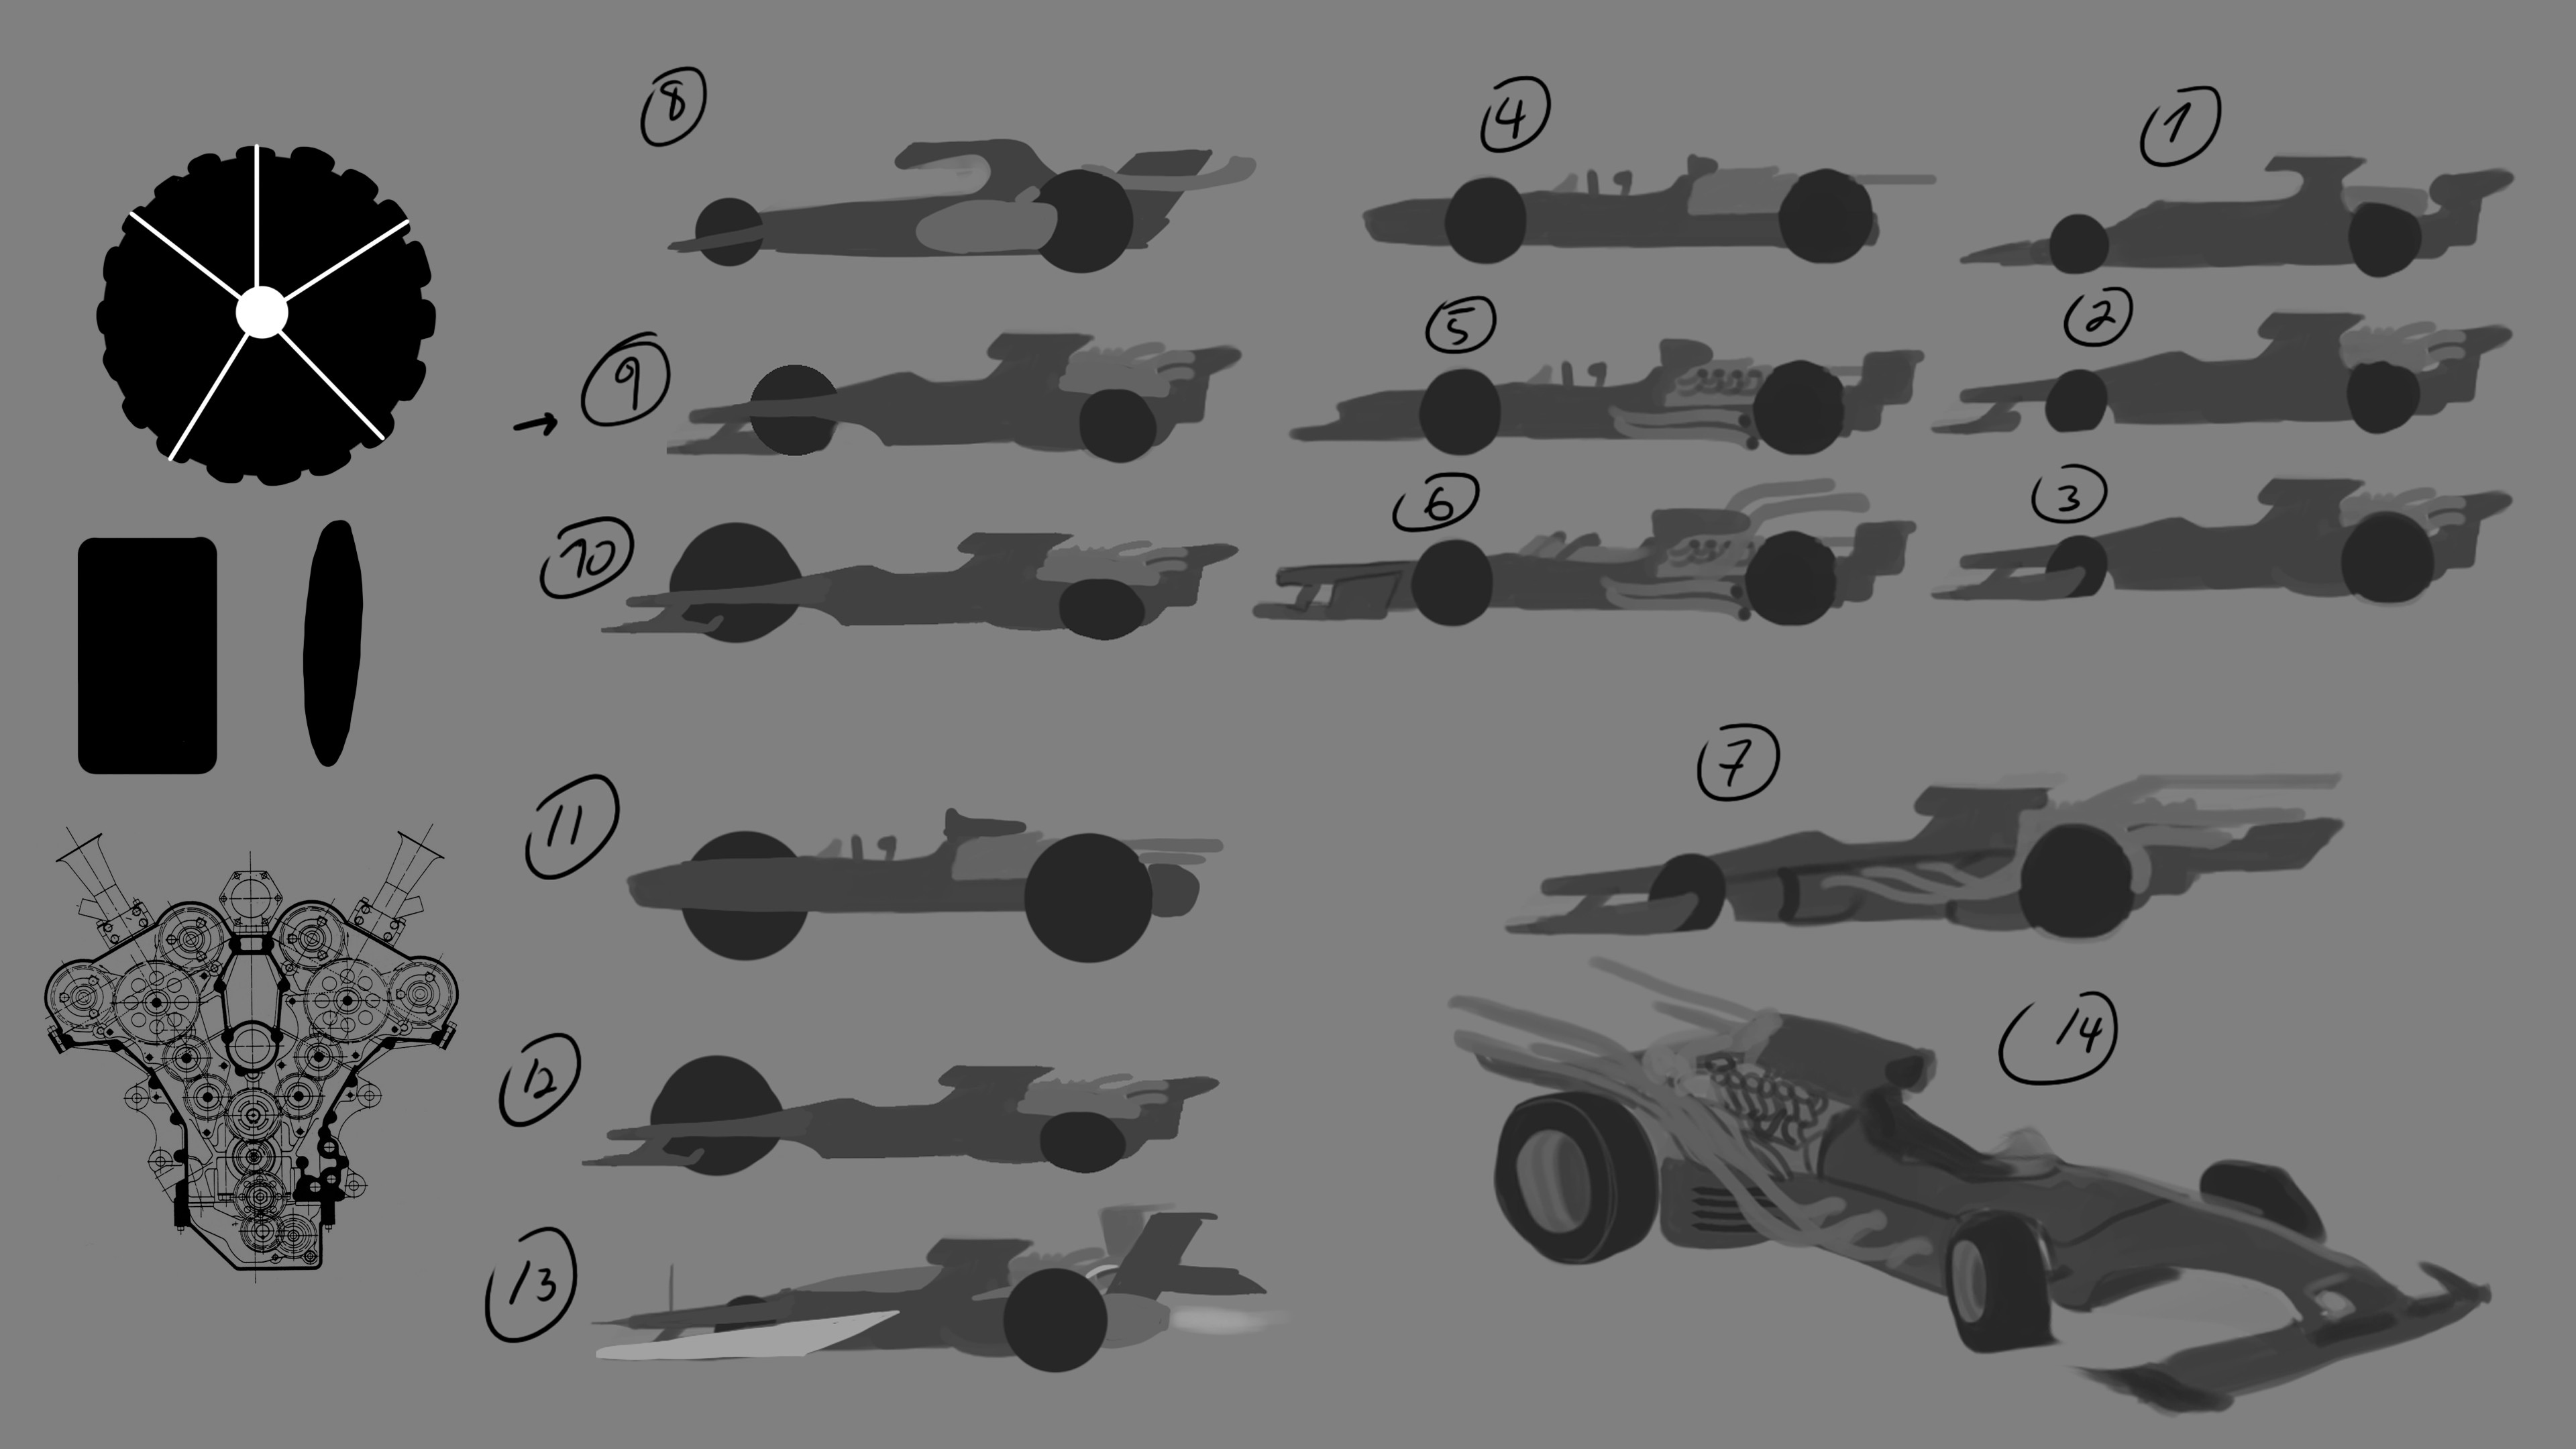 early exploration, formula 1 for underground racing